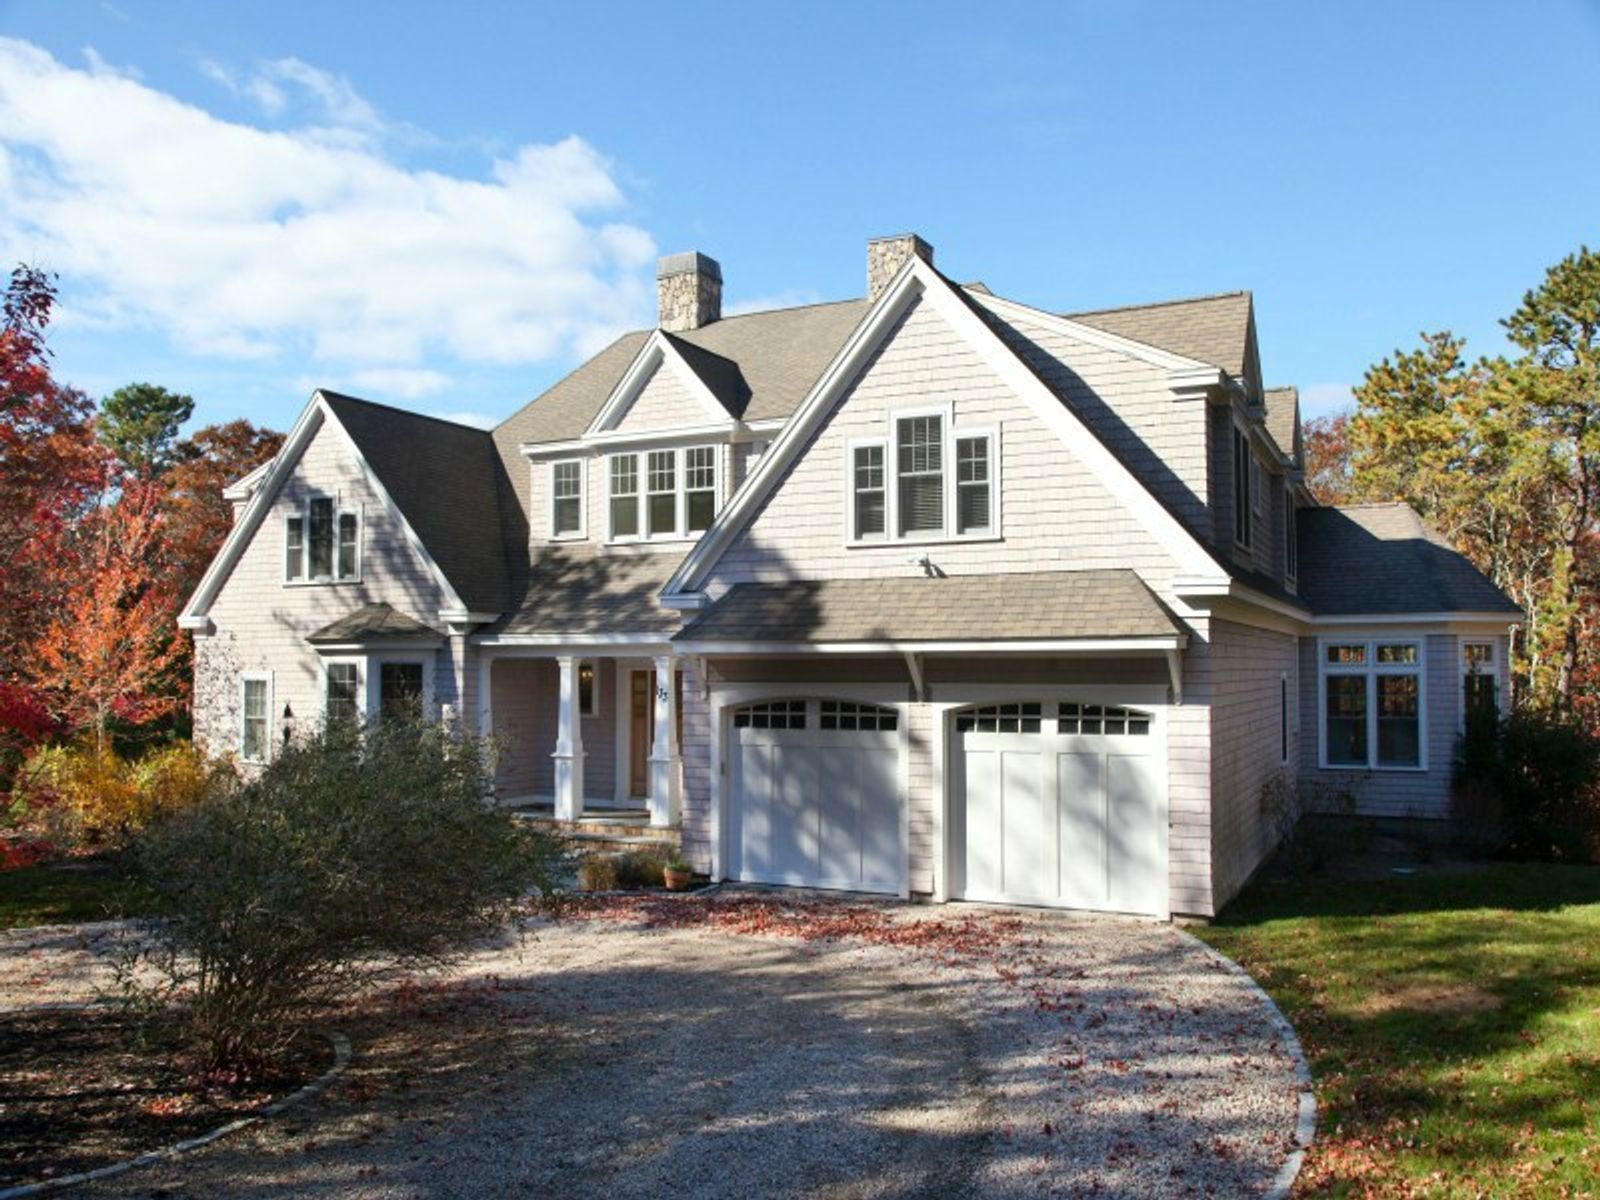 Gorgeous Contemporary with Inground Pool, Mashpee MA Single Family Home - Cape Cod Real Estate